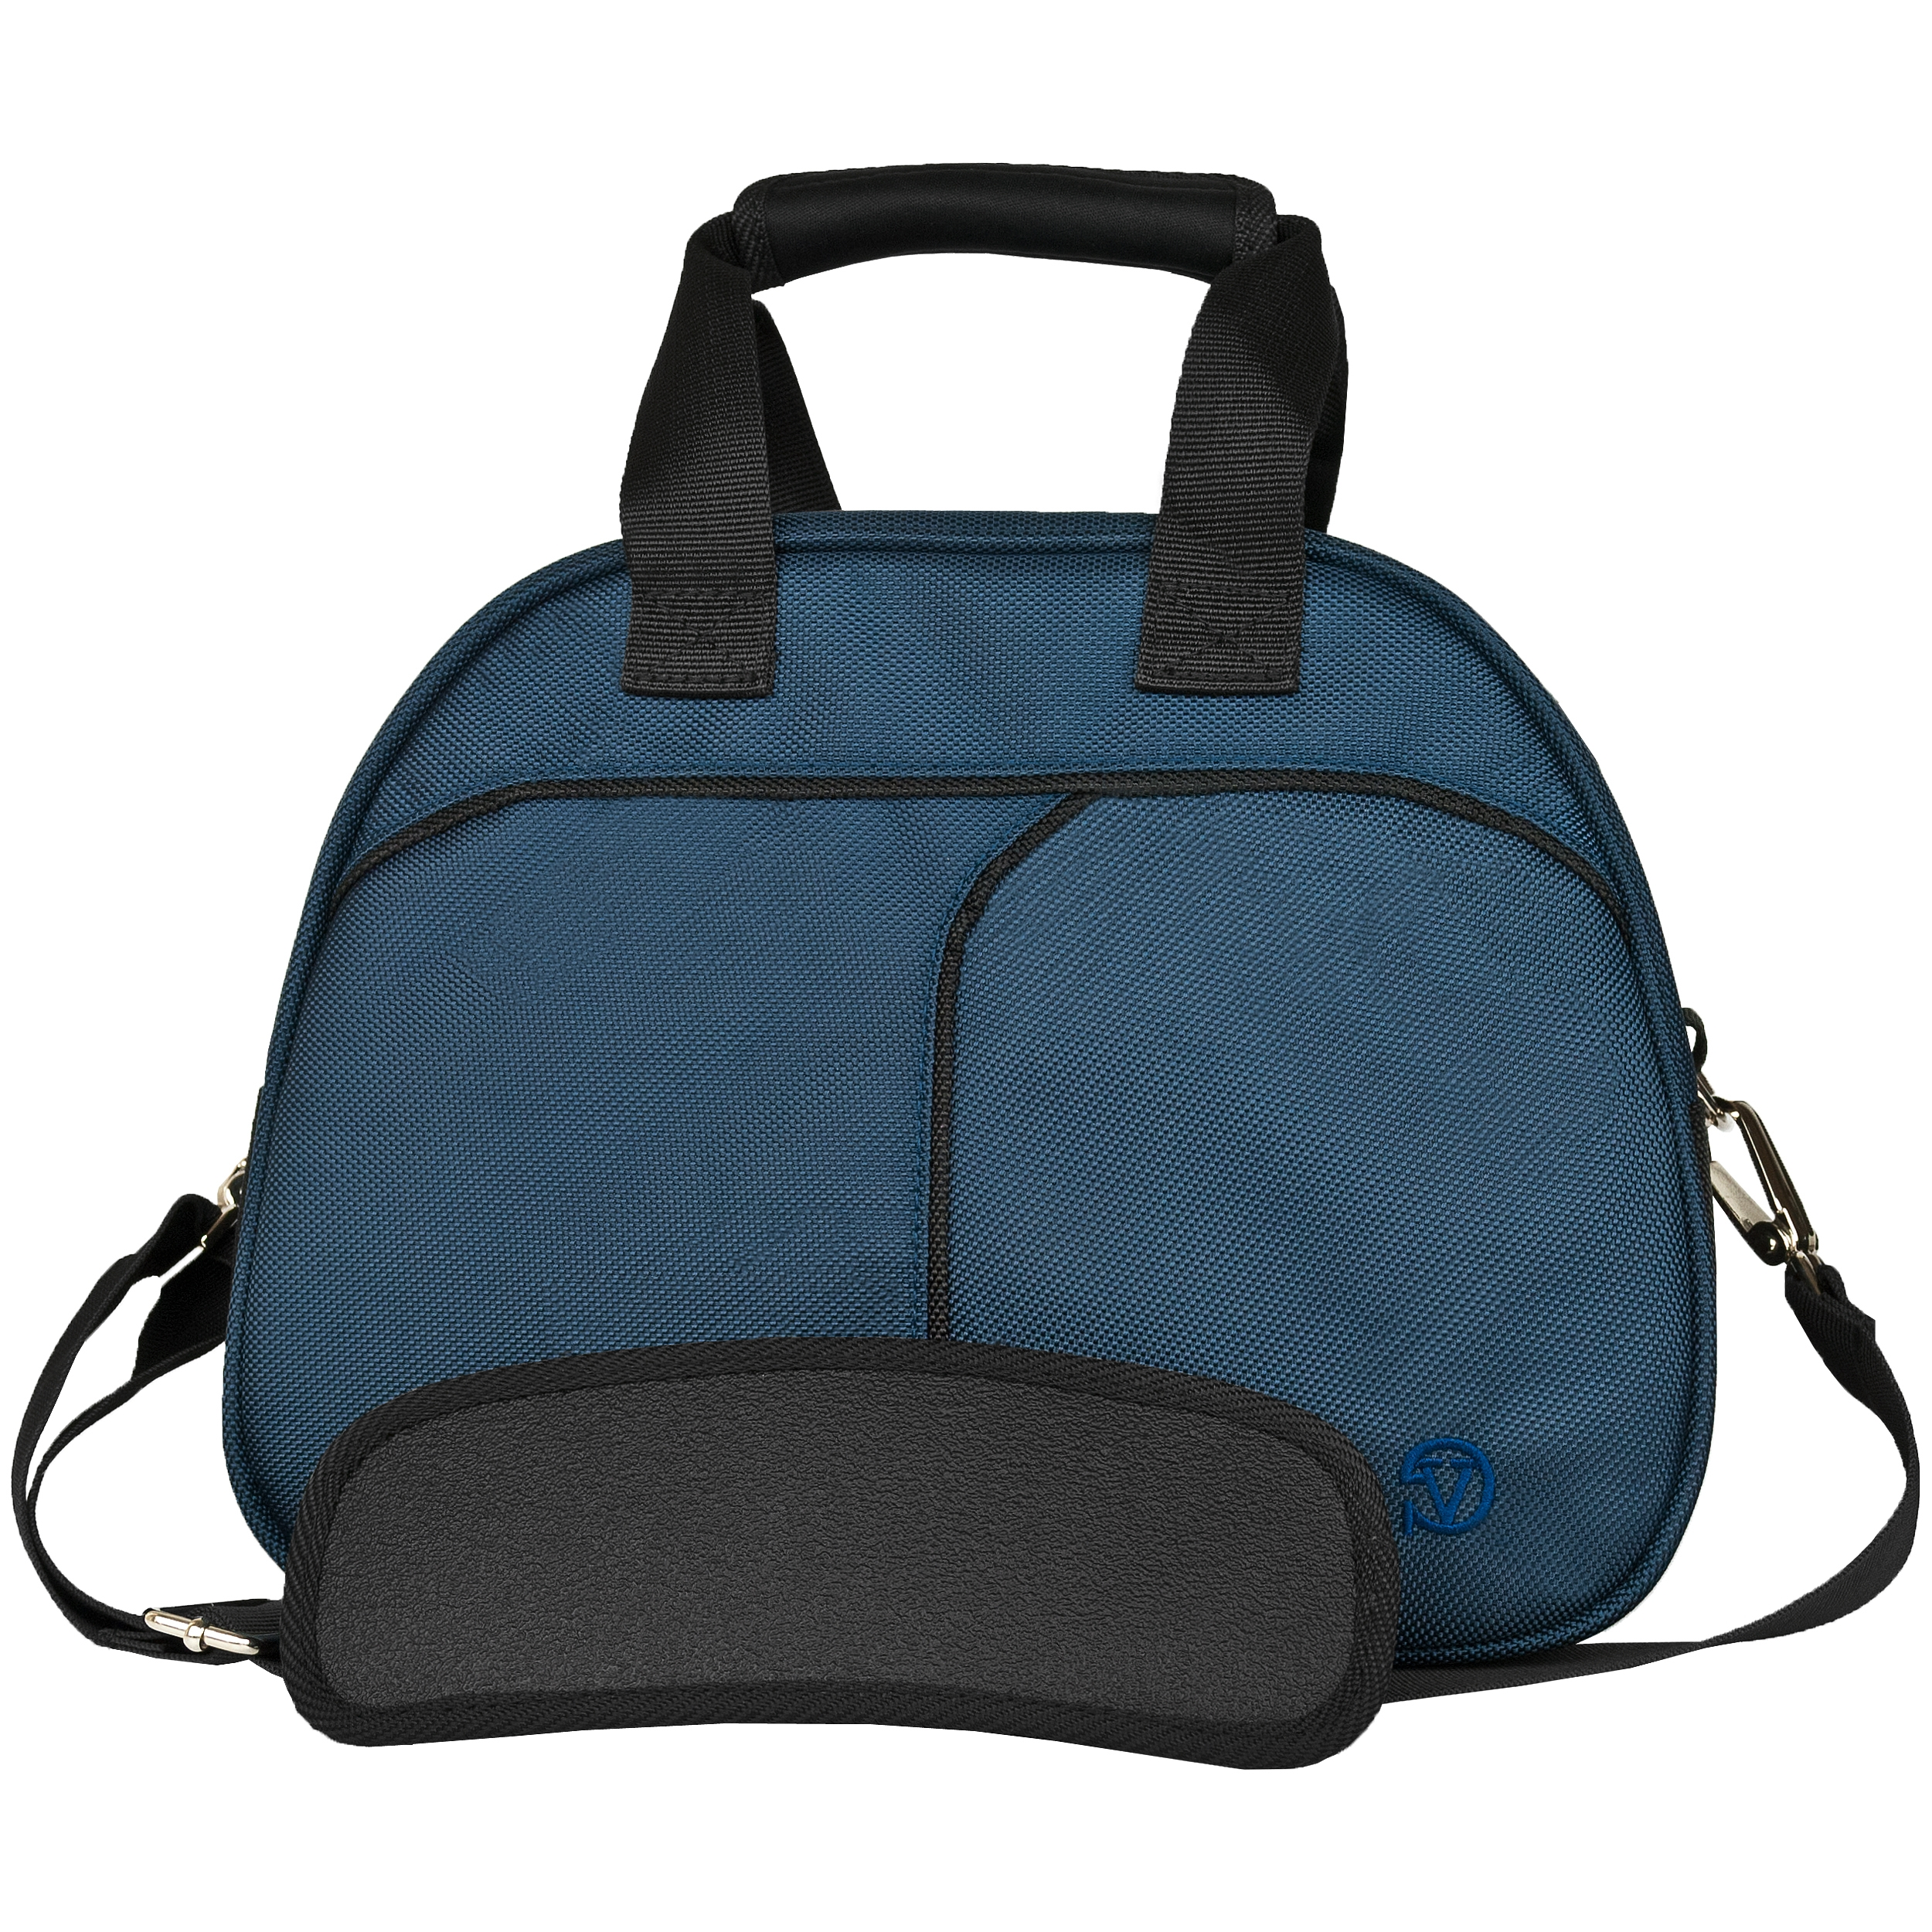 Mithra SLR Camera Bag (Navy Blue)